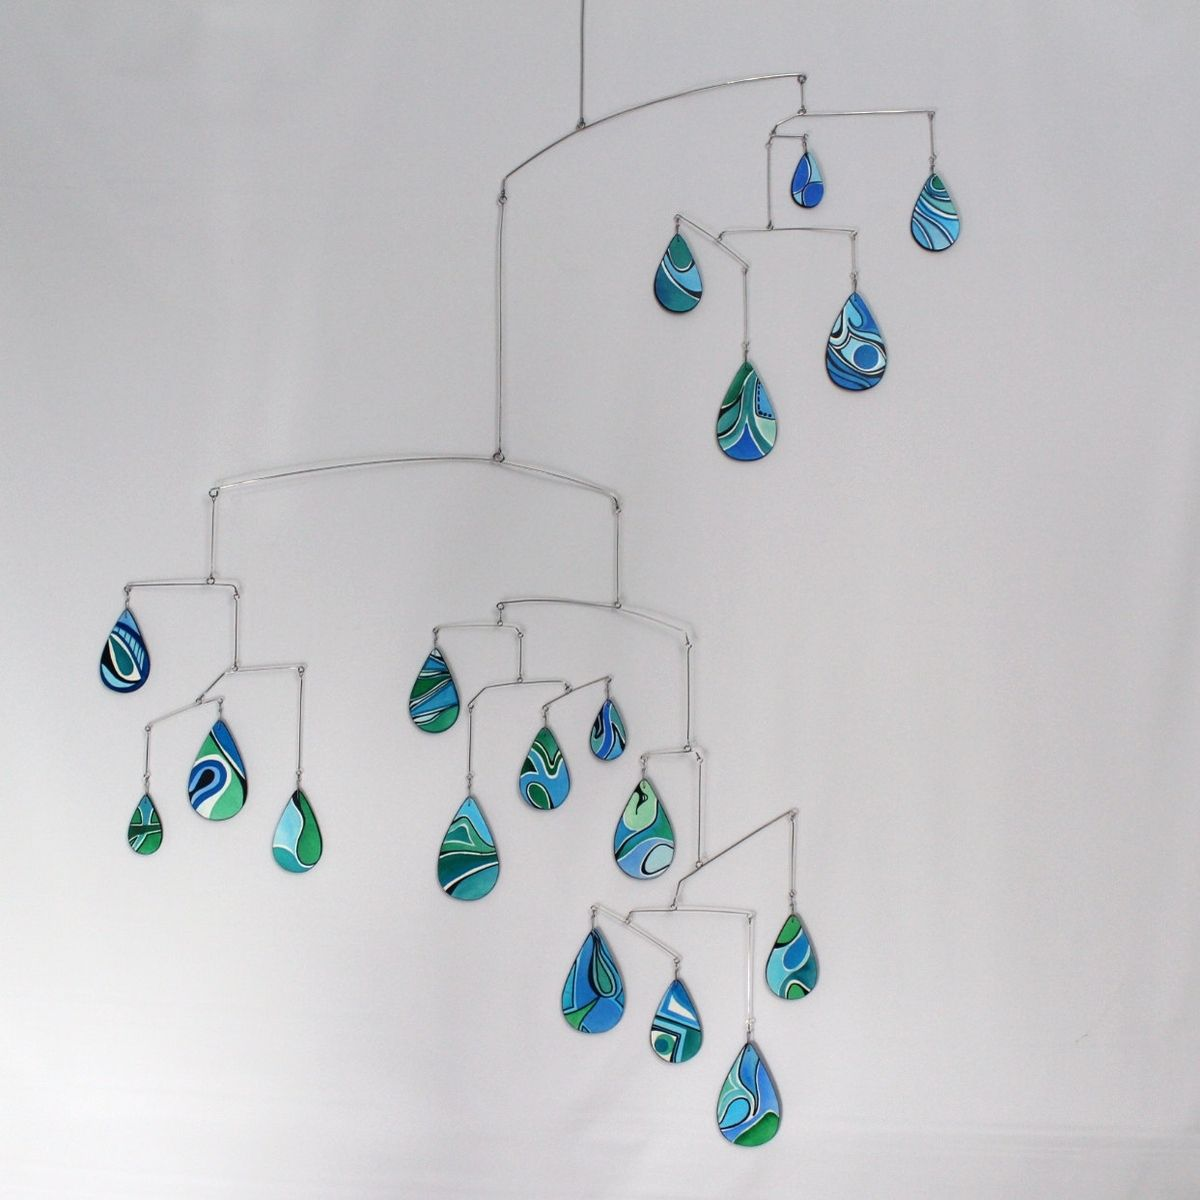 Buy A Hand Crafted Large Rain Drops Art Mobile Spring